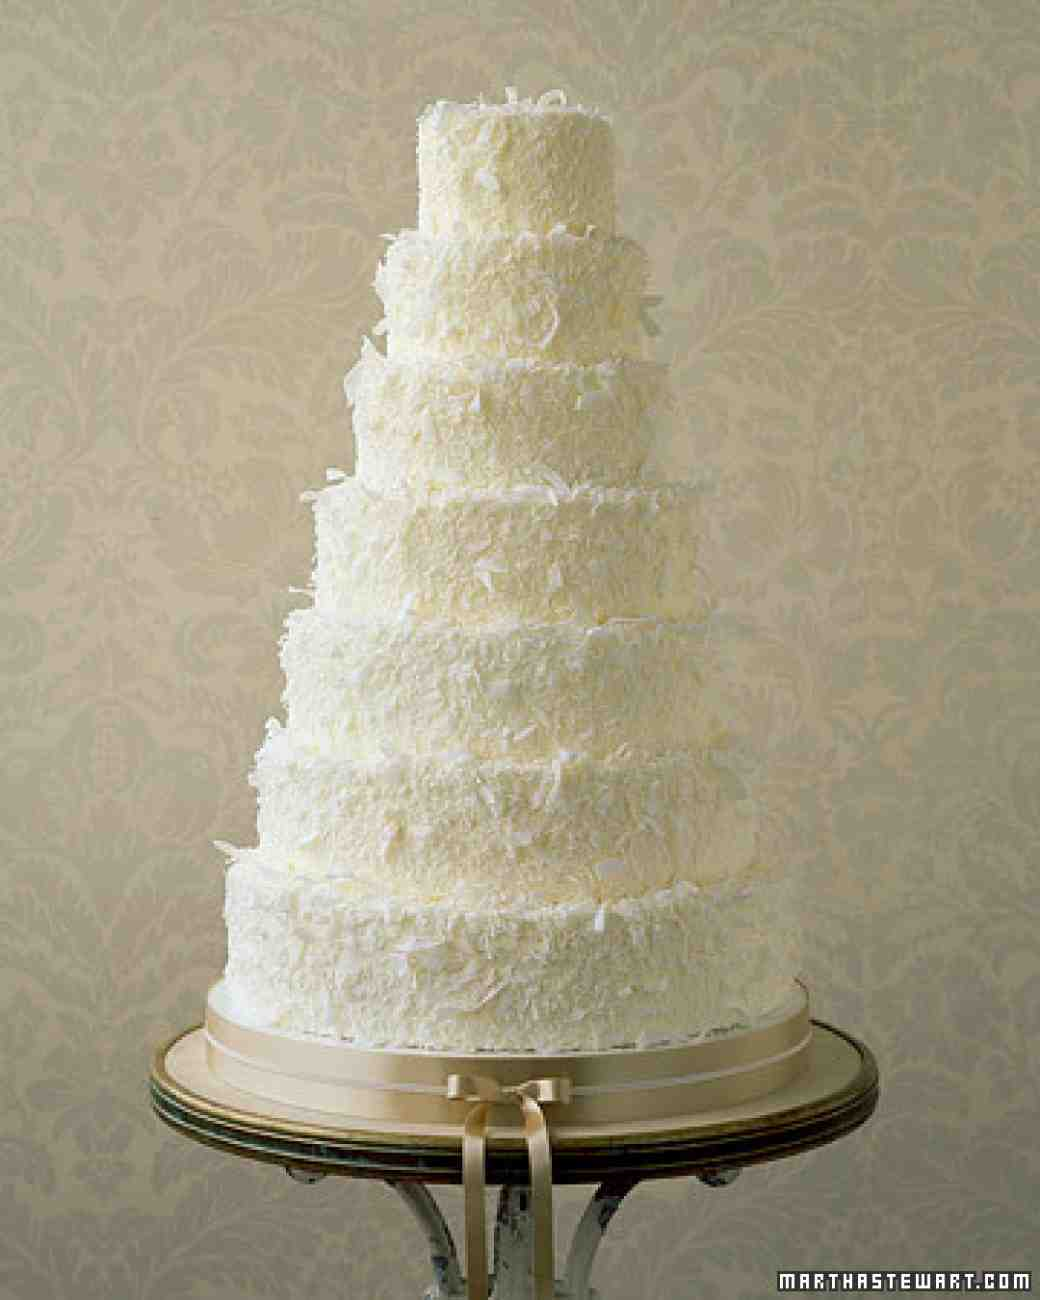 5 Photos of Coconut Buttercream Wedding Cakes